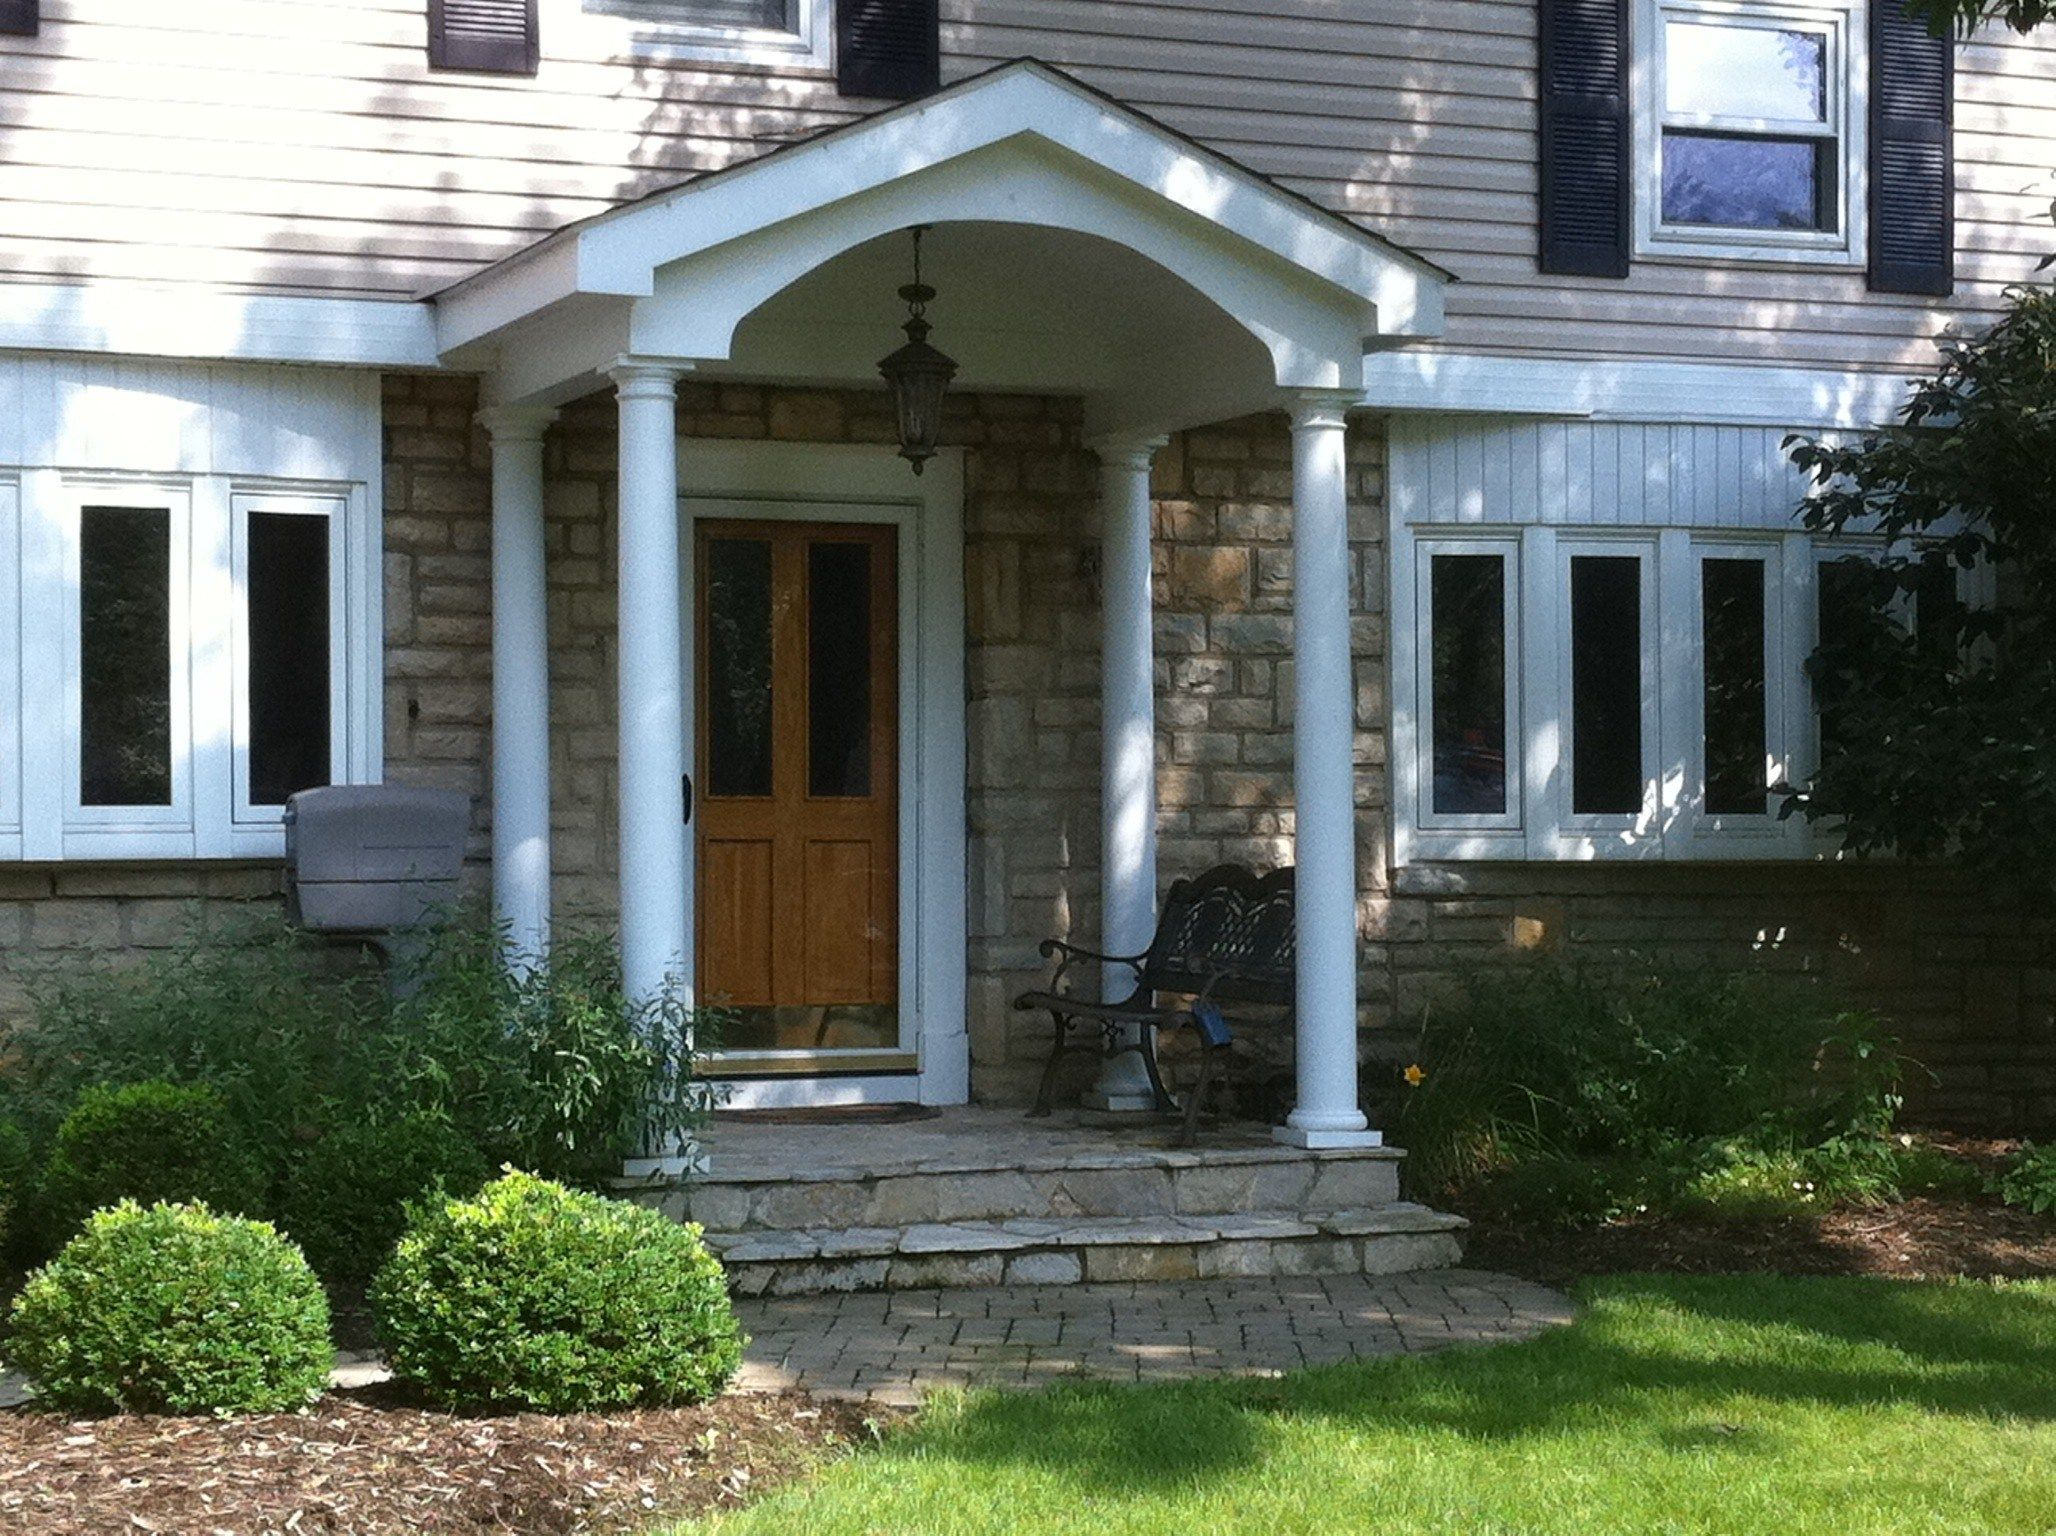 Resplendent Small Front Porch Ideas With Concrete Decks Flooring As